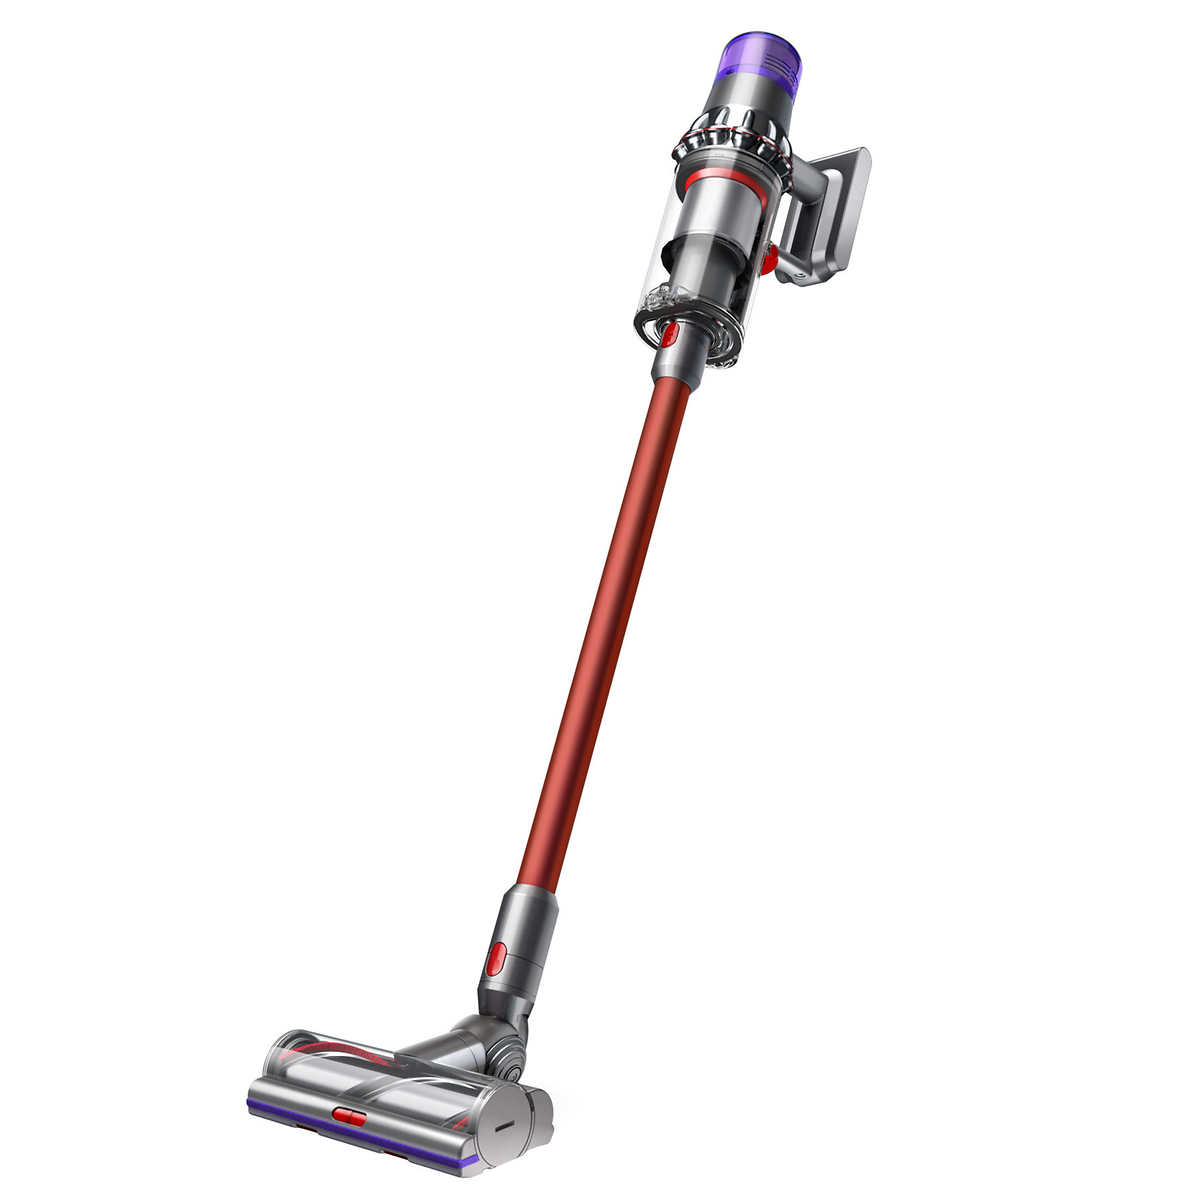 Dyson V11 Animal Cordless Stick Vacuum Cleaner